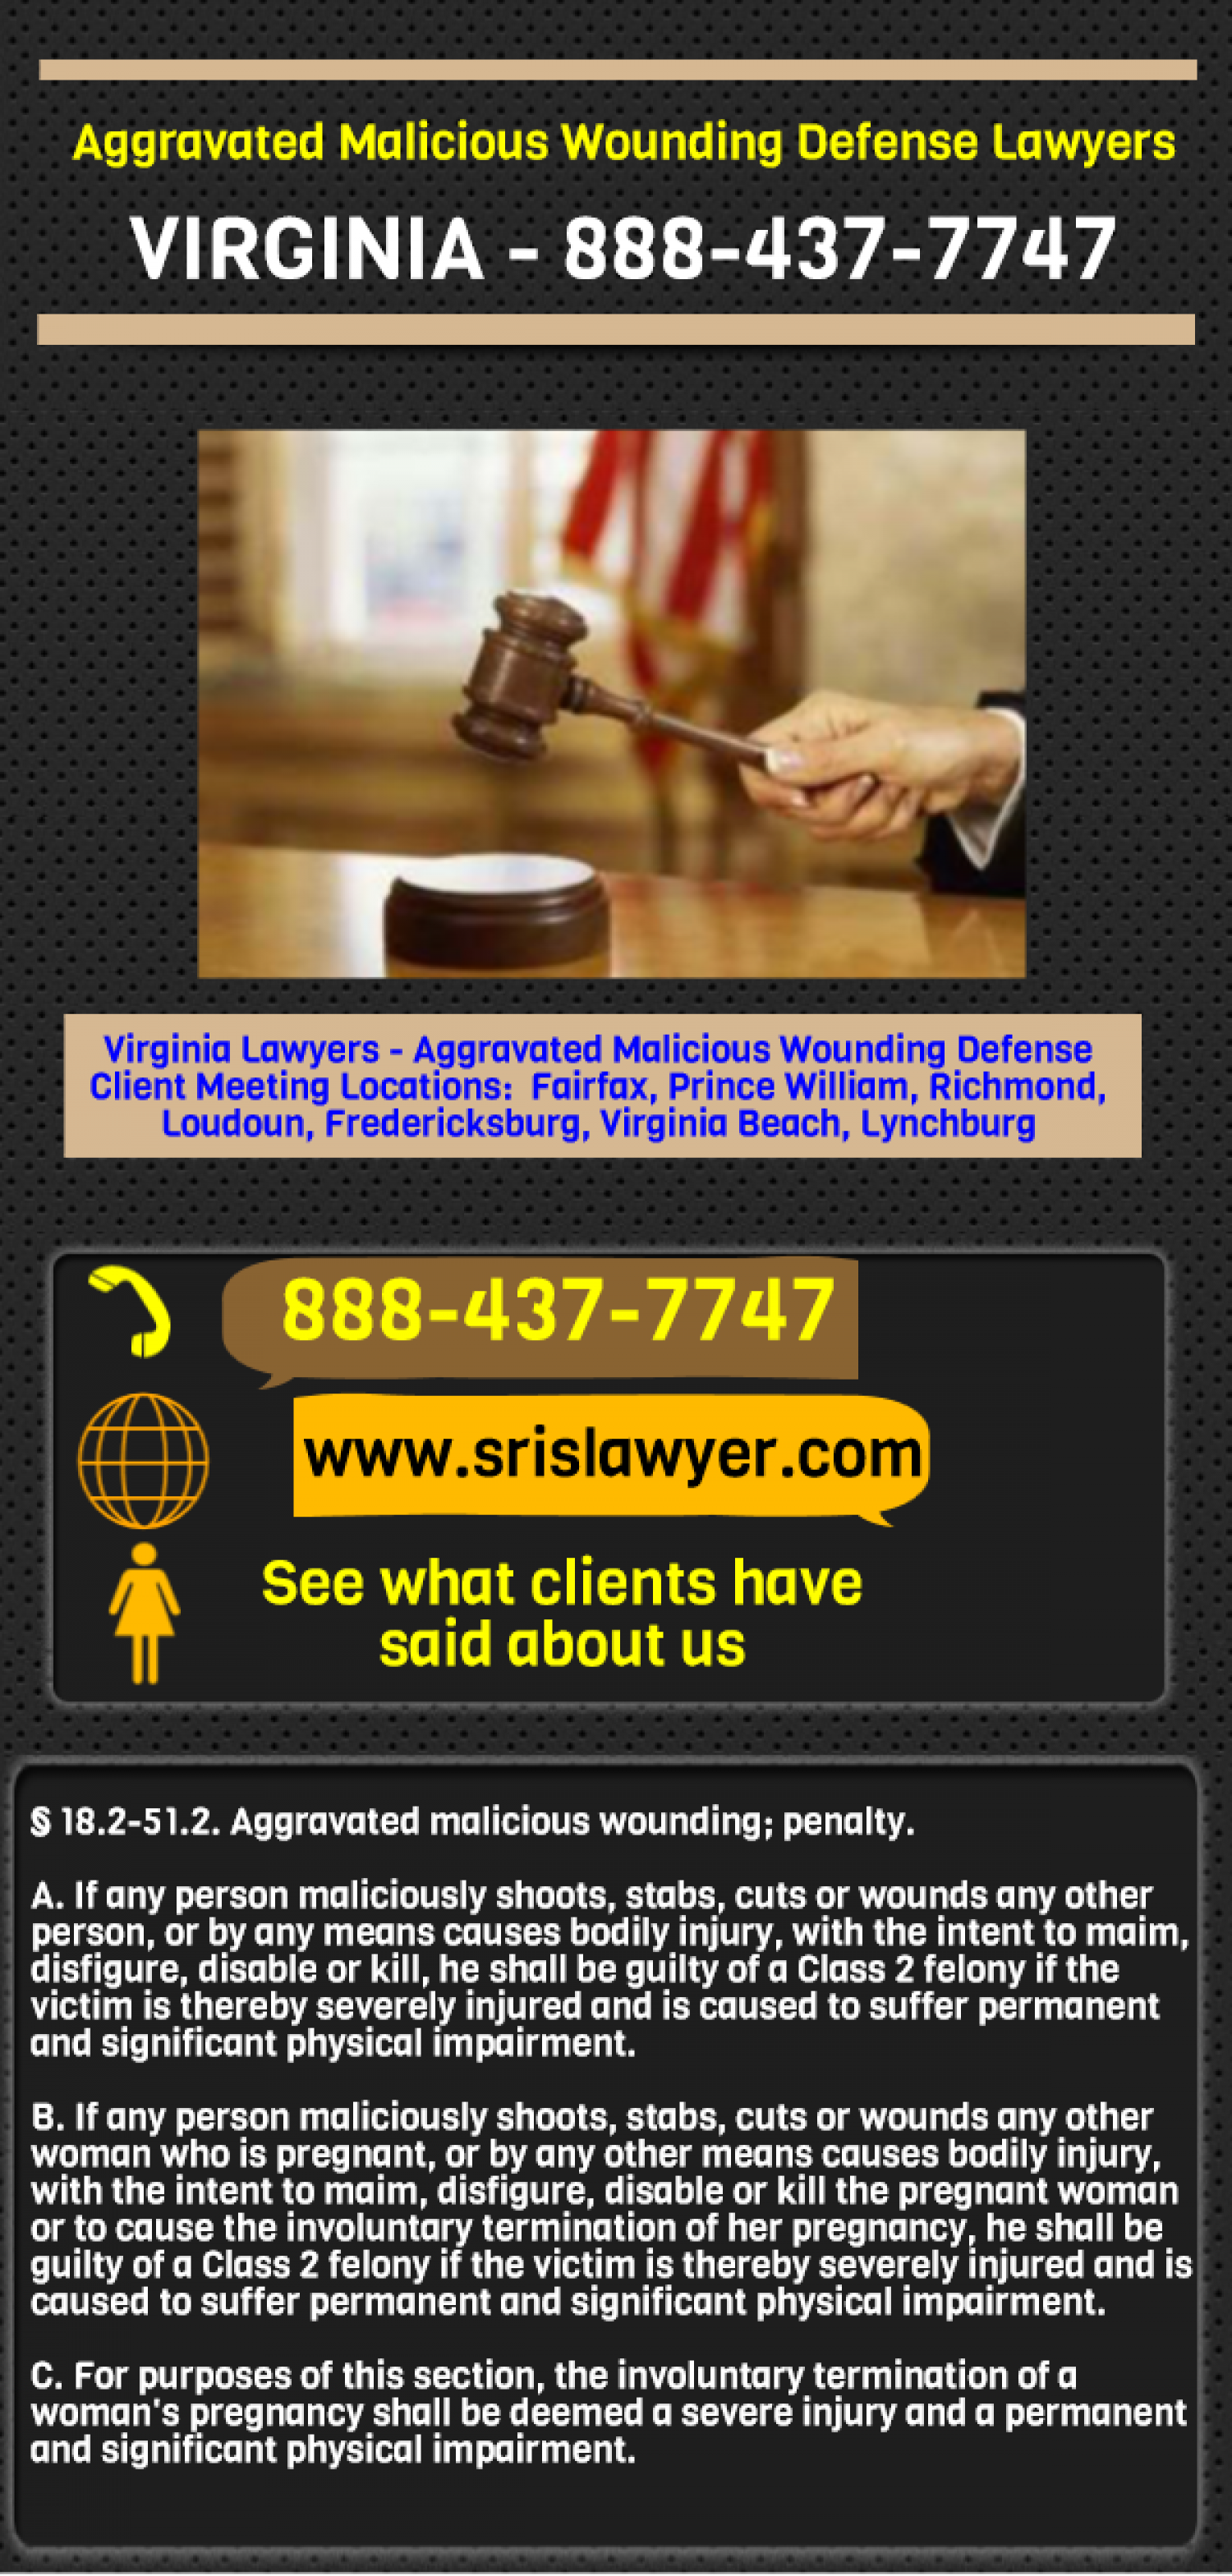 Aggravated Malicious Wounding Lawyers Virginia Fairfax Alexandria Infographic